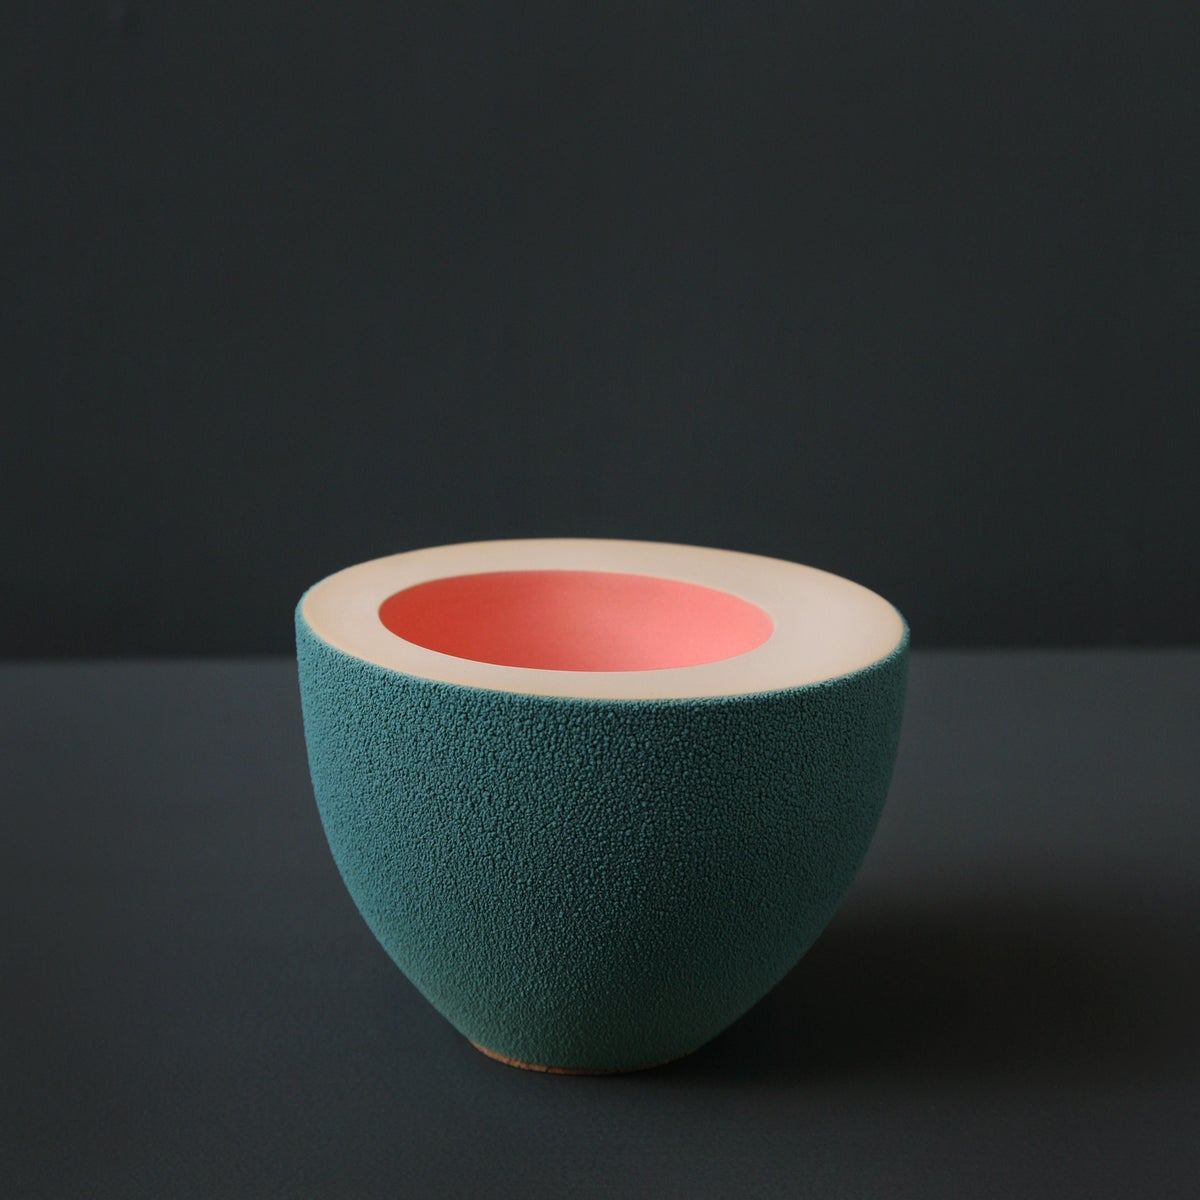 Image of Landscape // Colour Vessel #1 by Sophie Southgate.